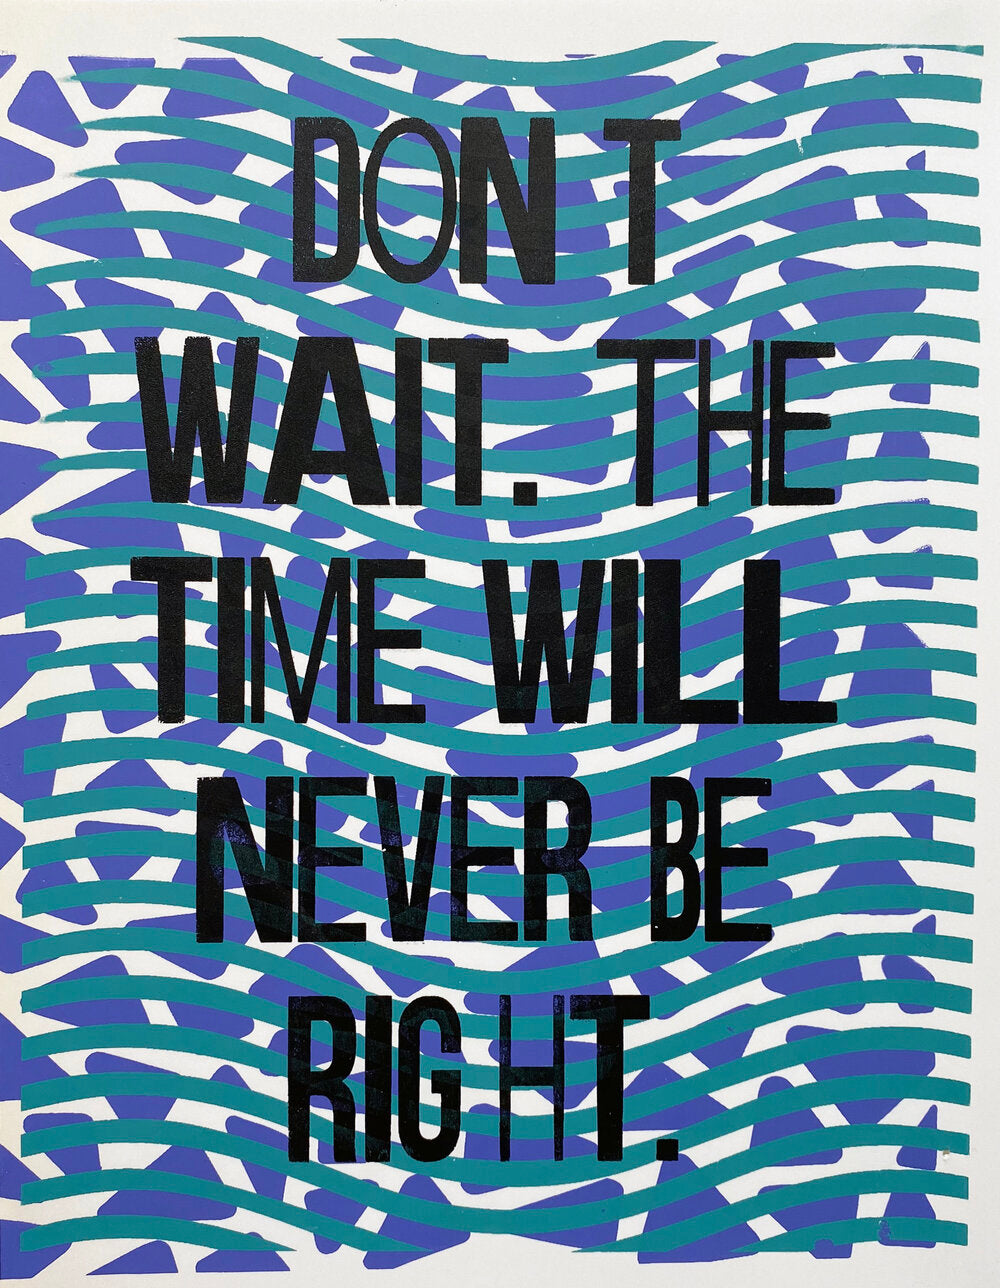 Don't Wait Art Print by the Wilkinsburg Youth Project